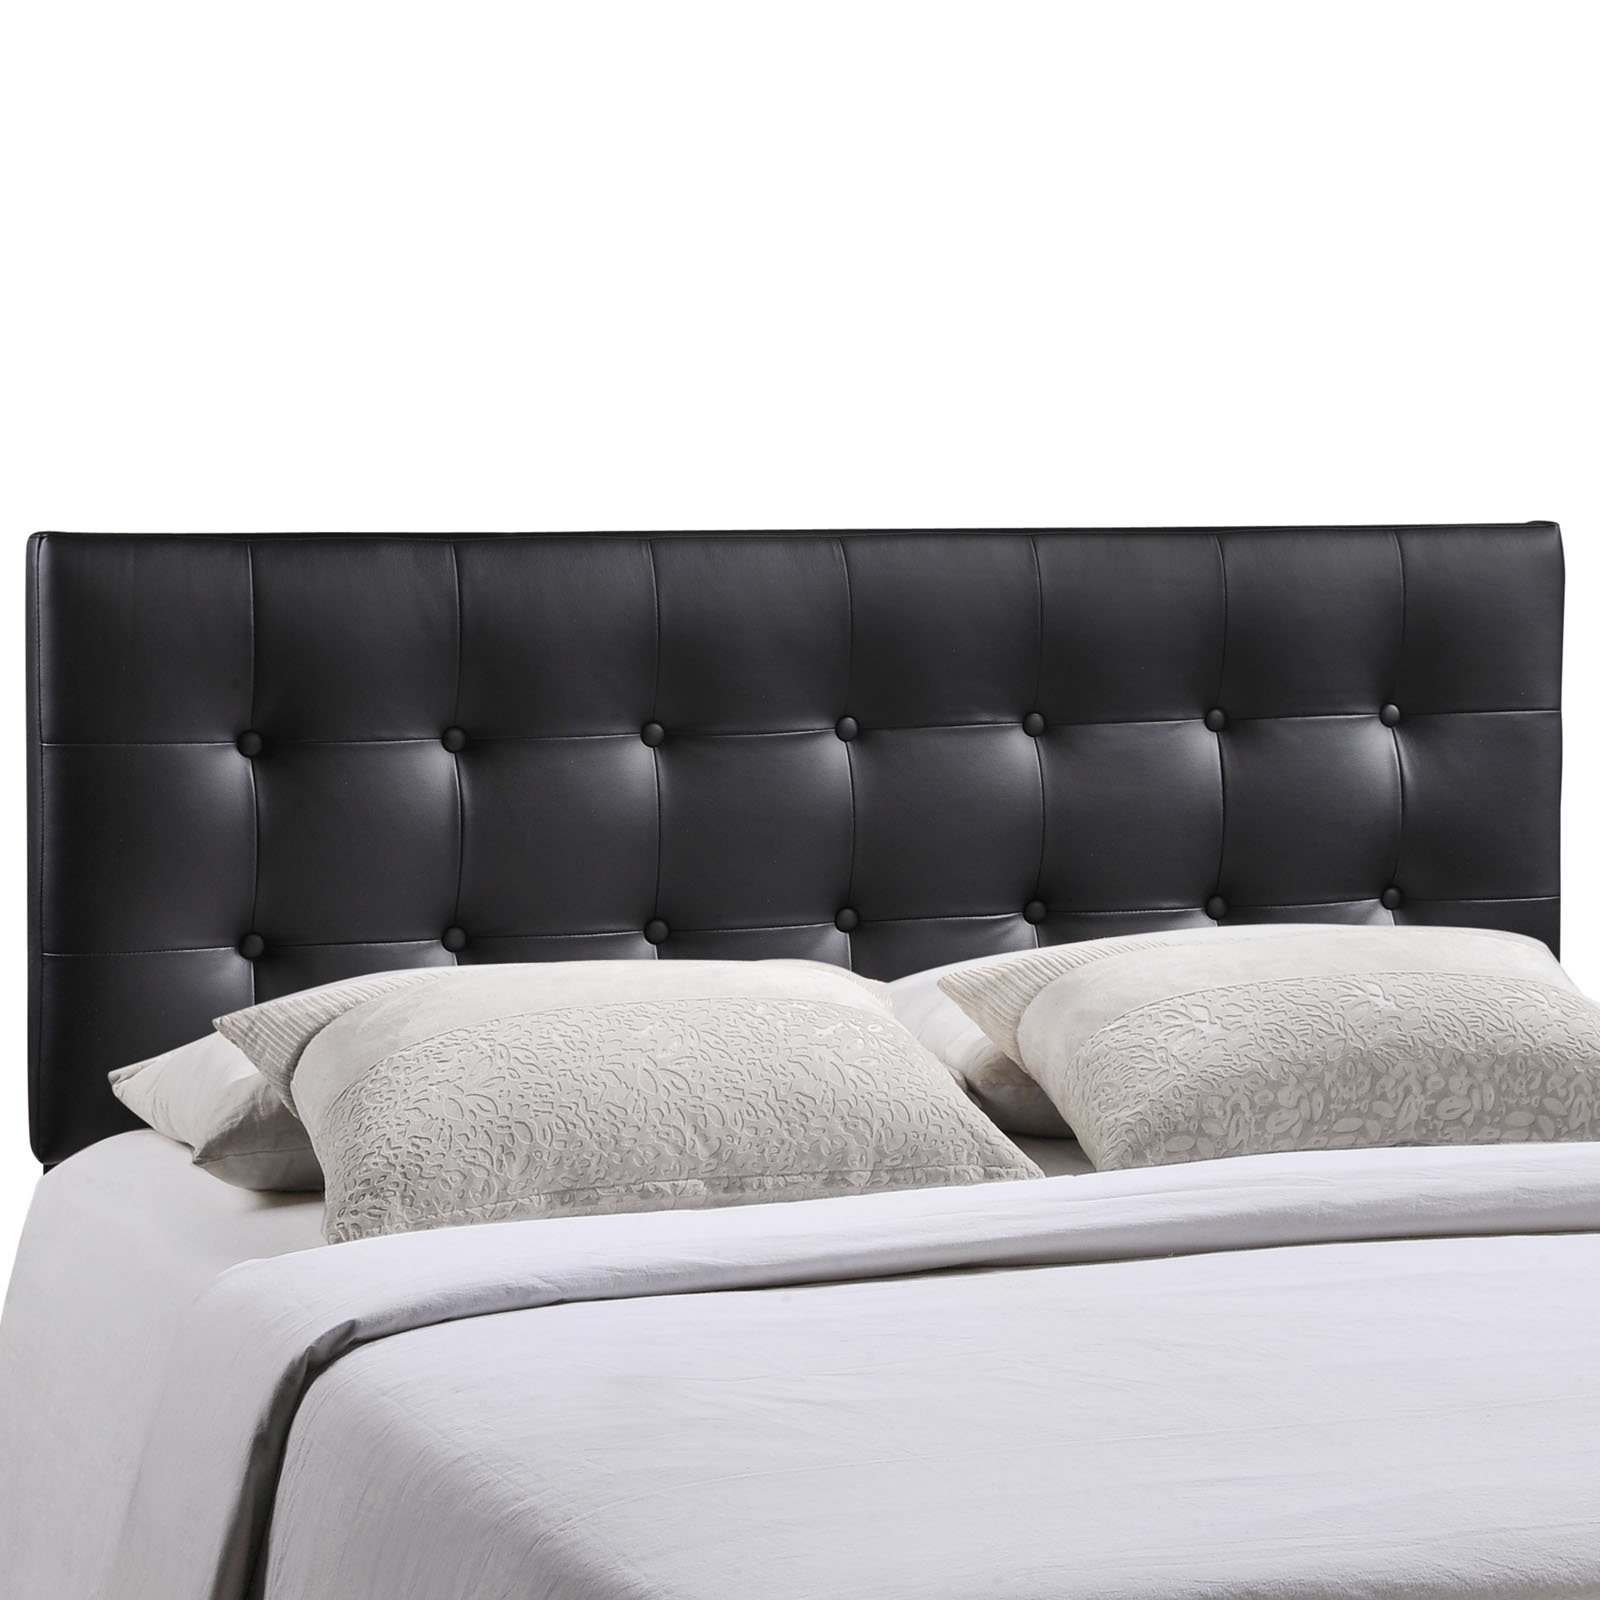 Modway Emily Upholstered Tufted Button Fabric Queen Size Headboard In Black by Modway